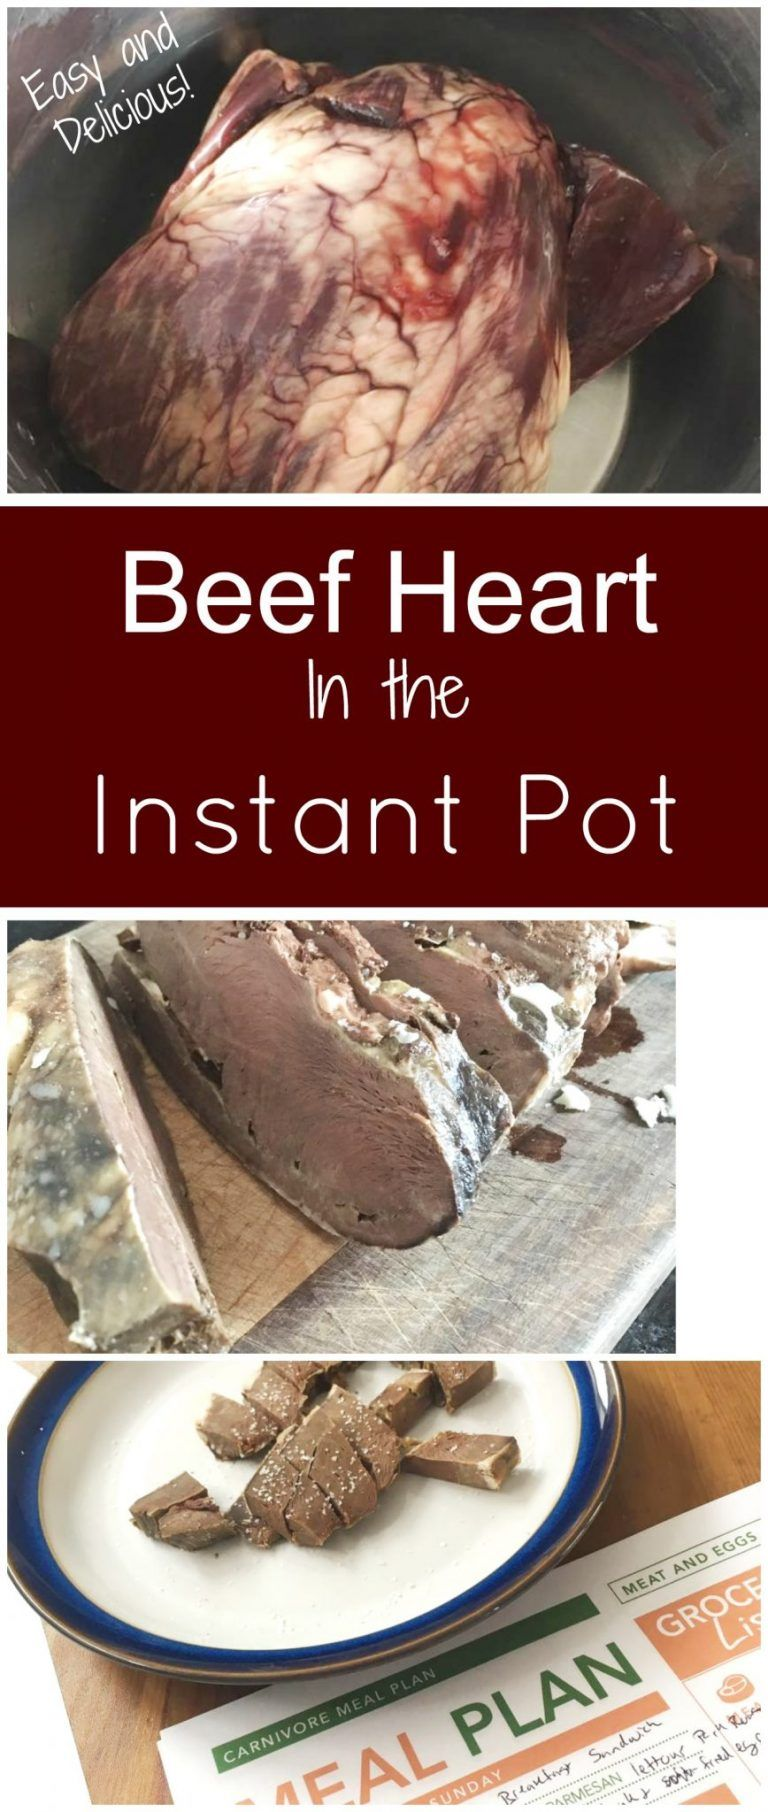 How To Cook Beef Heart In The Instant Pot Health Home Happiness Recipe How To Cook Beef Beef Heart Recipe Beef